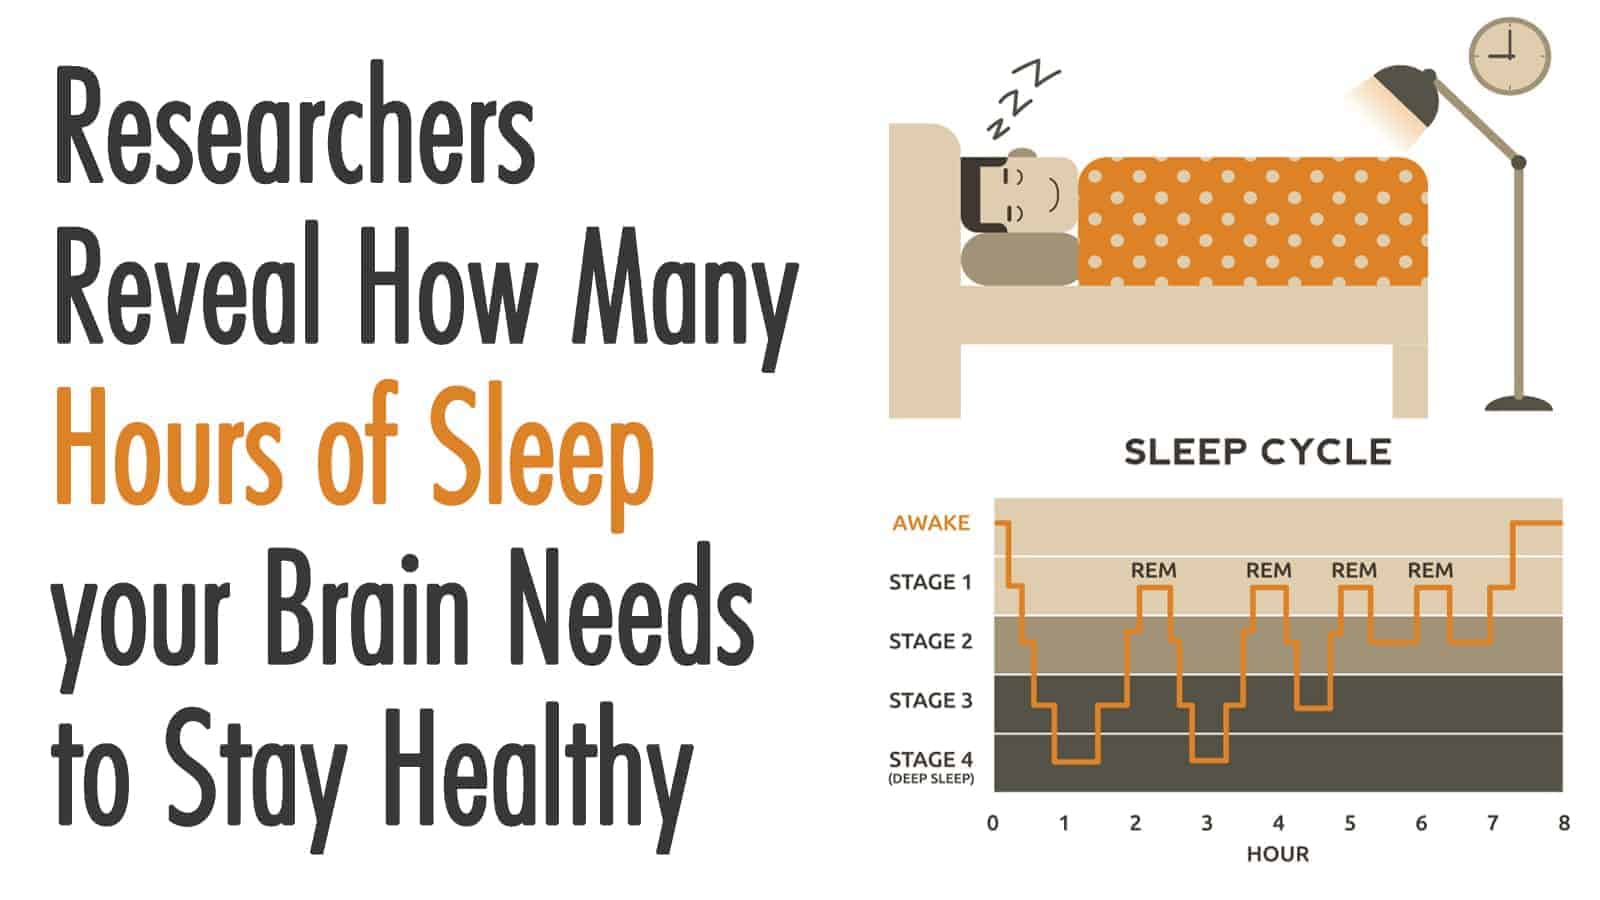 Researchers Reveal How Many Hours Of Sleep Your Brain Needs To Stay Healthy